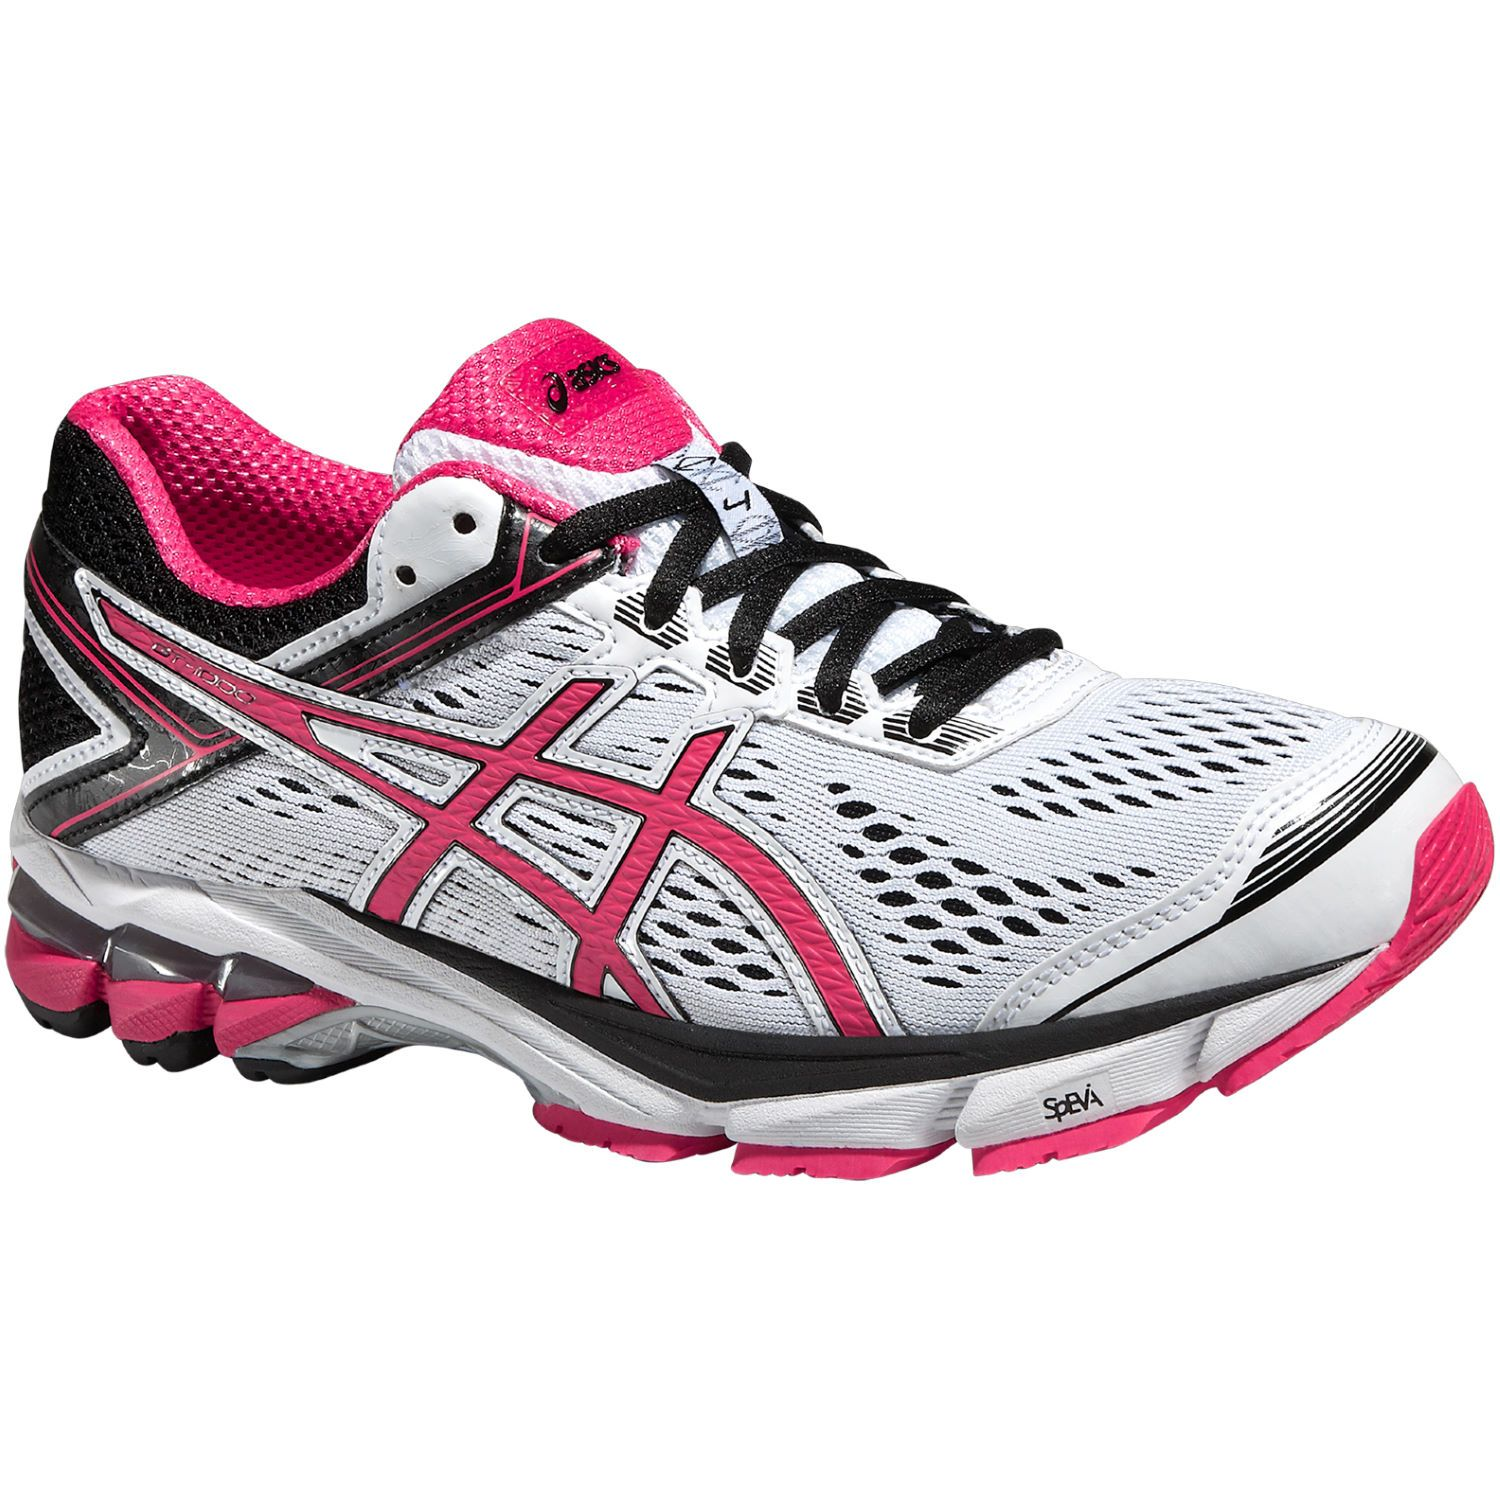 Asics 4 Women's Running Shoes - Off